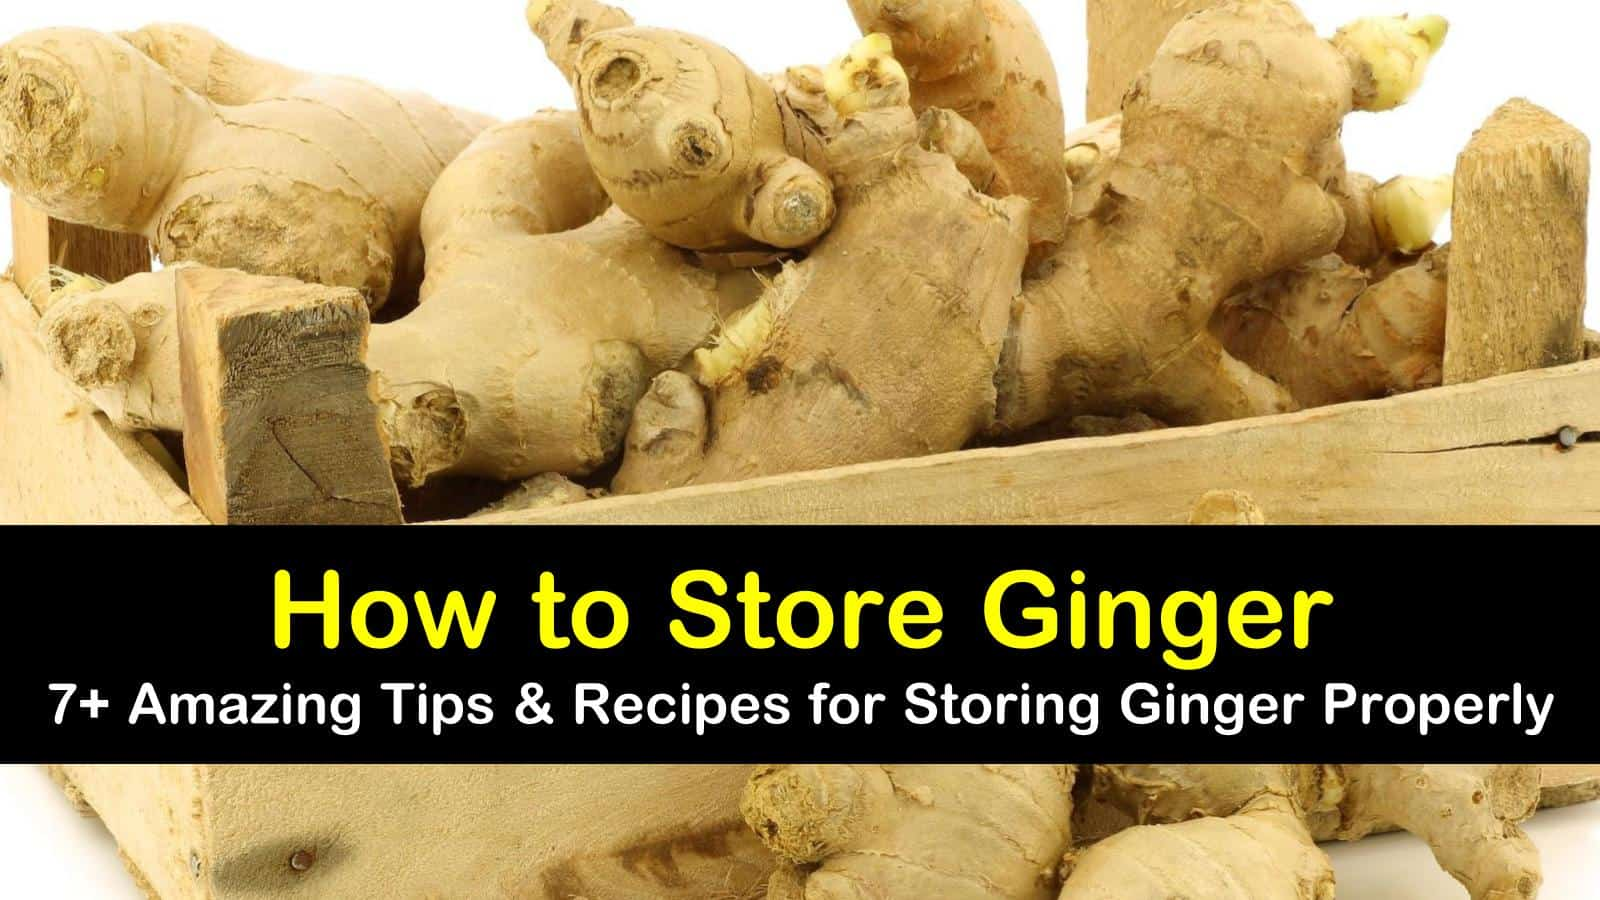 how to store ginger titleimg1